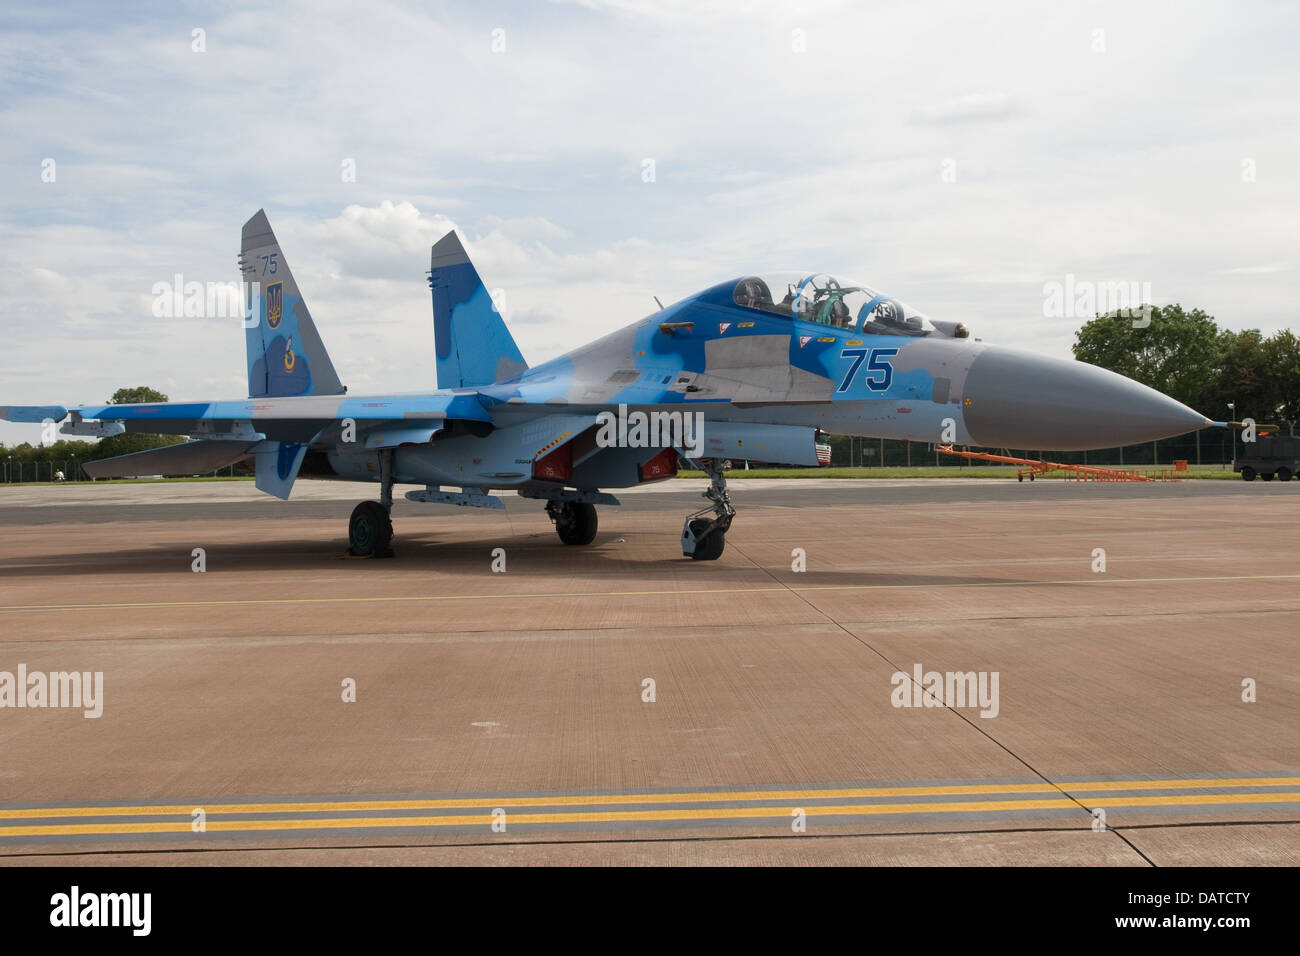 Ukrainian Air Force Sukhoi Fighter at Royal International Air Tattoo (RIAT) Fairford 2011 - Stock Image